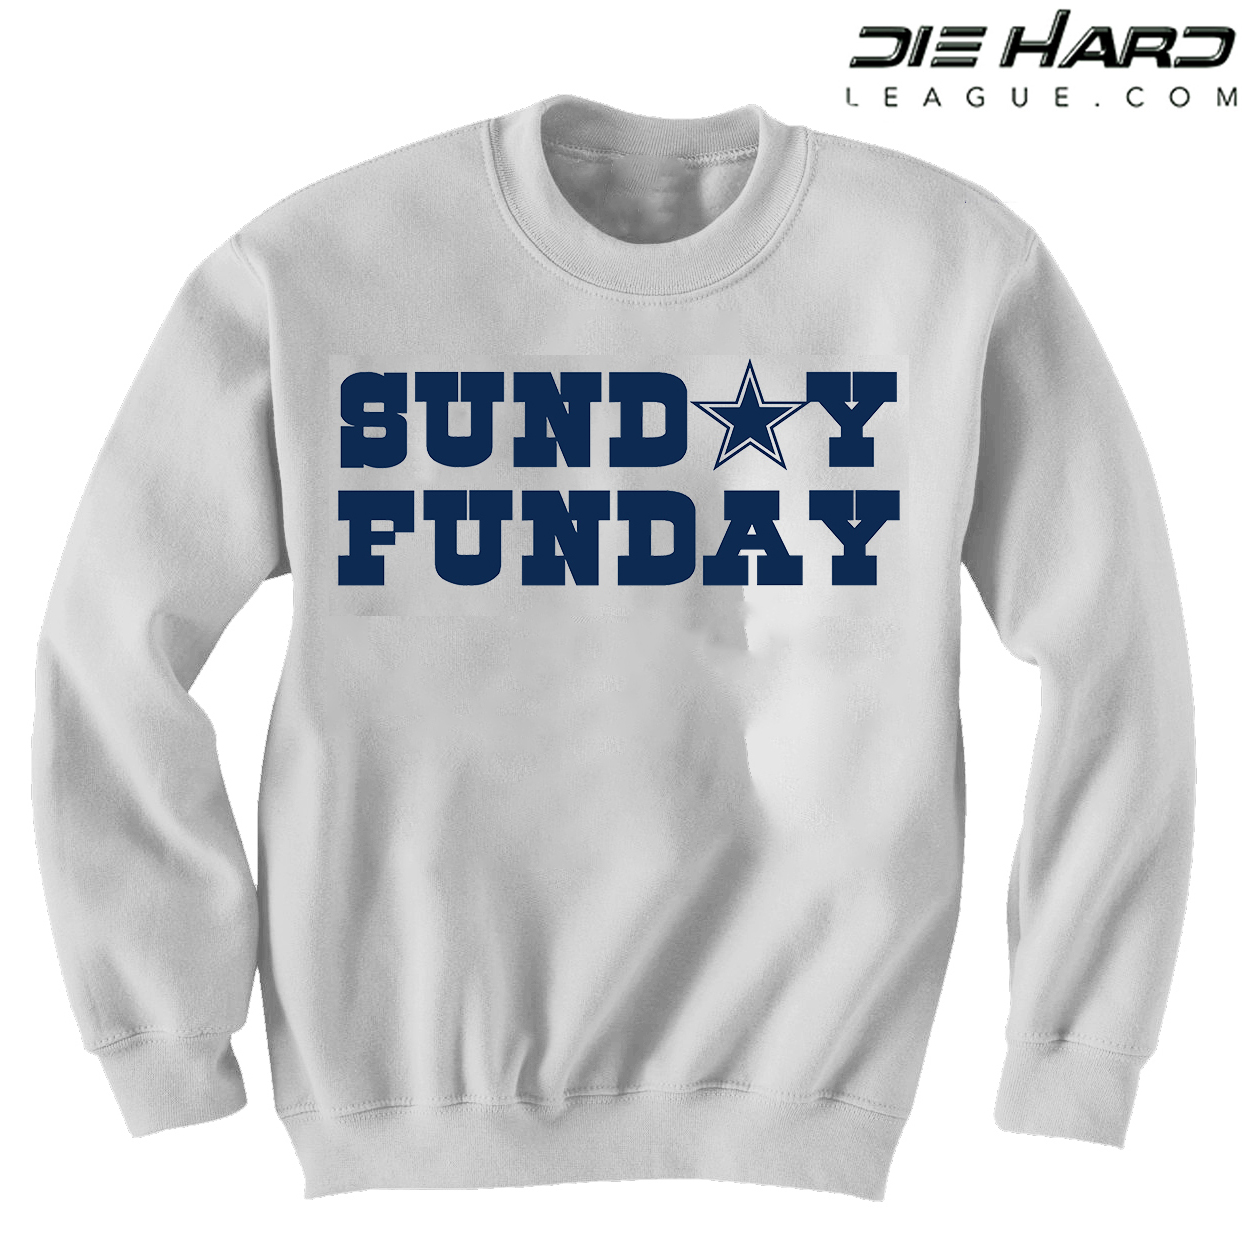 6b9ced2d3 Dallas Cowboys Sweater - Sunday Funday White Sweatshirt